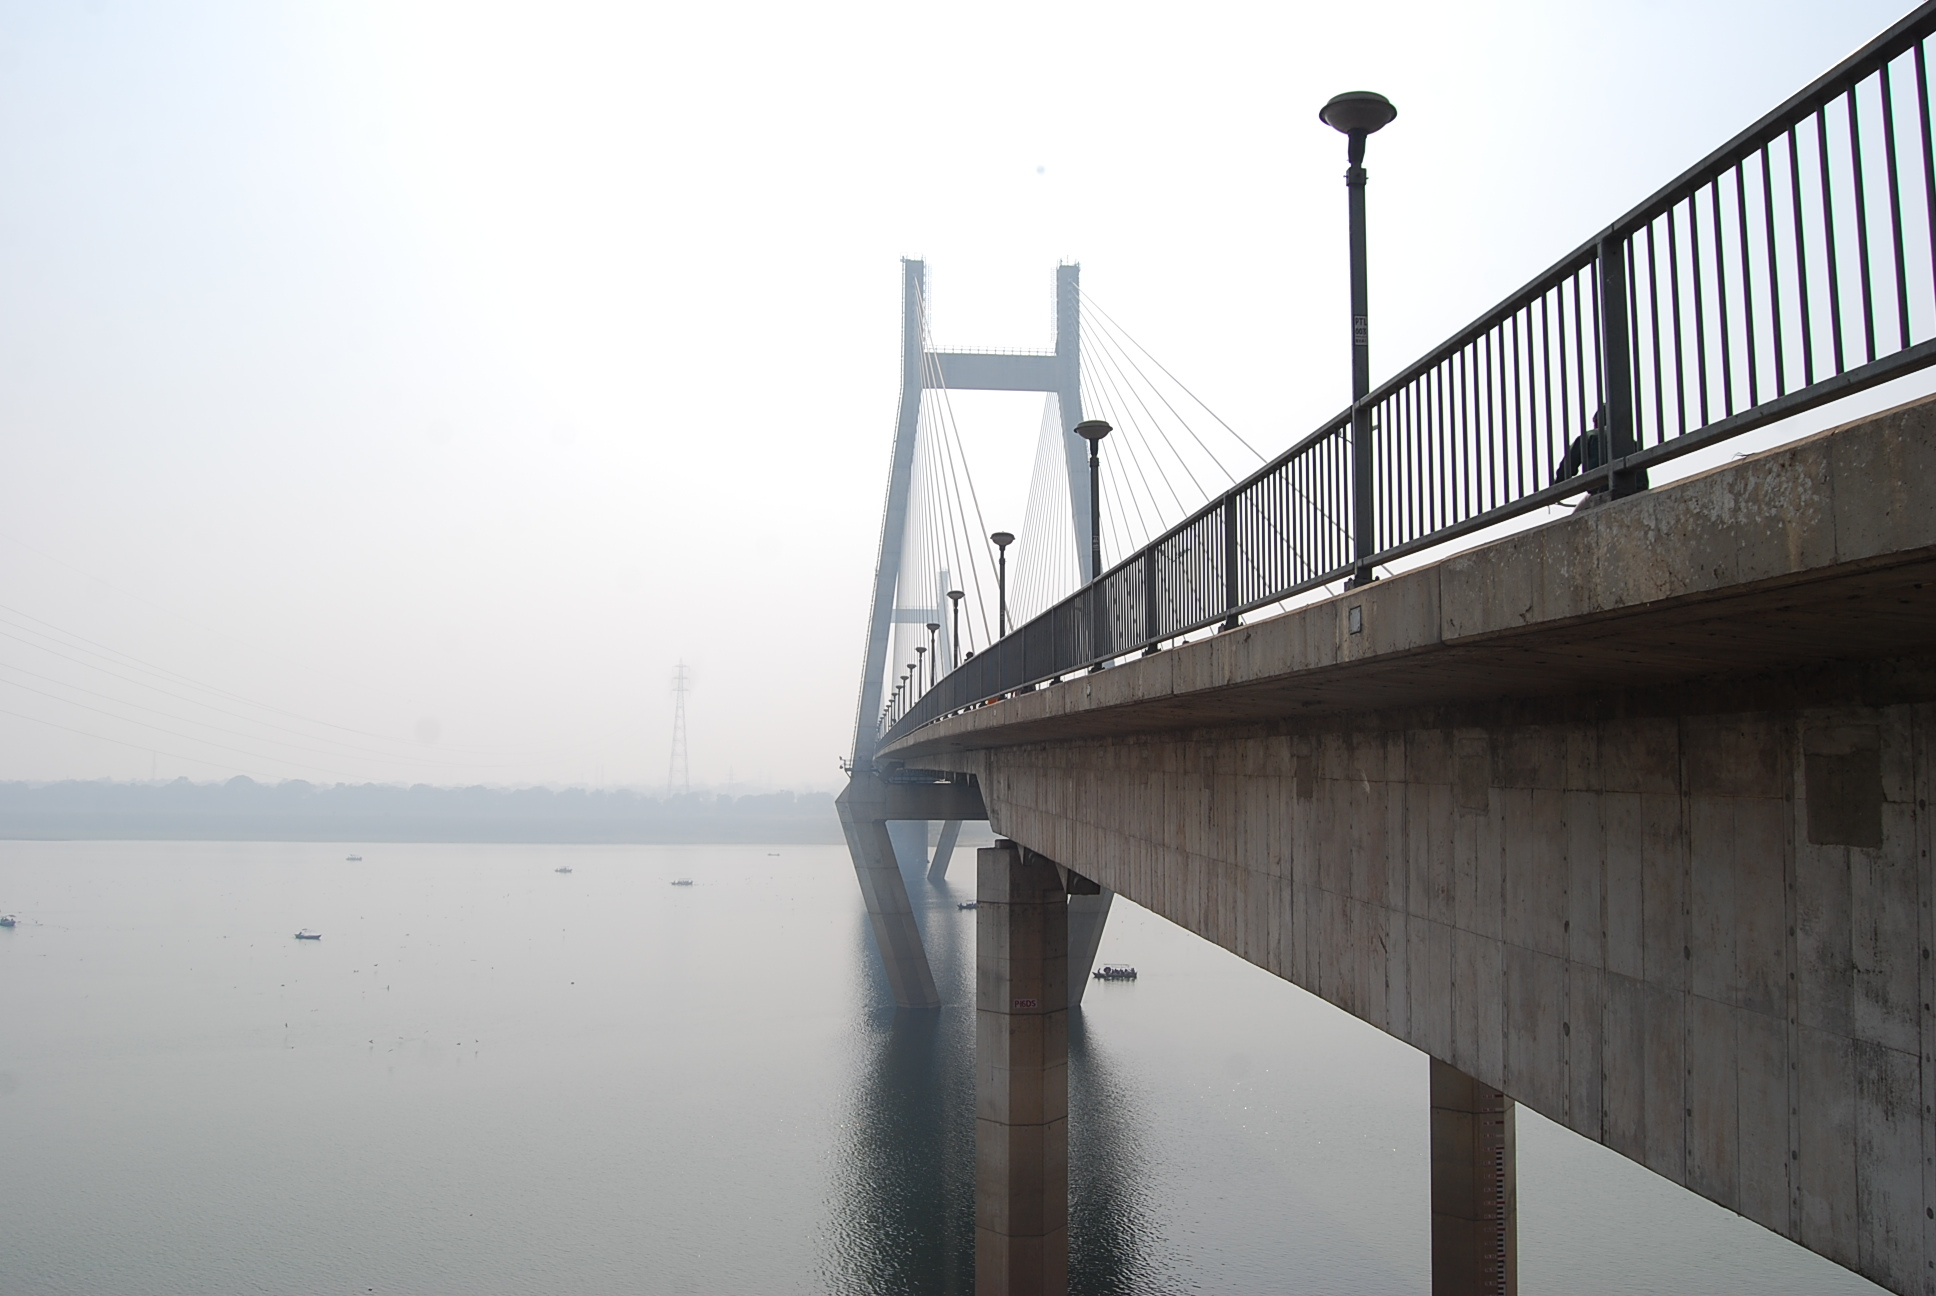 This photograph is of the New Yammuna bridge located in the city of Allahabad in Uttar Pradhesh.